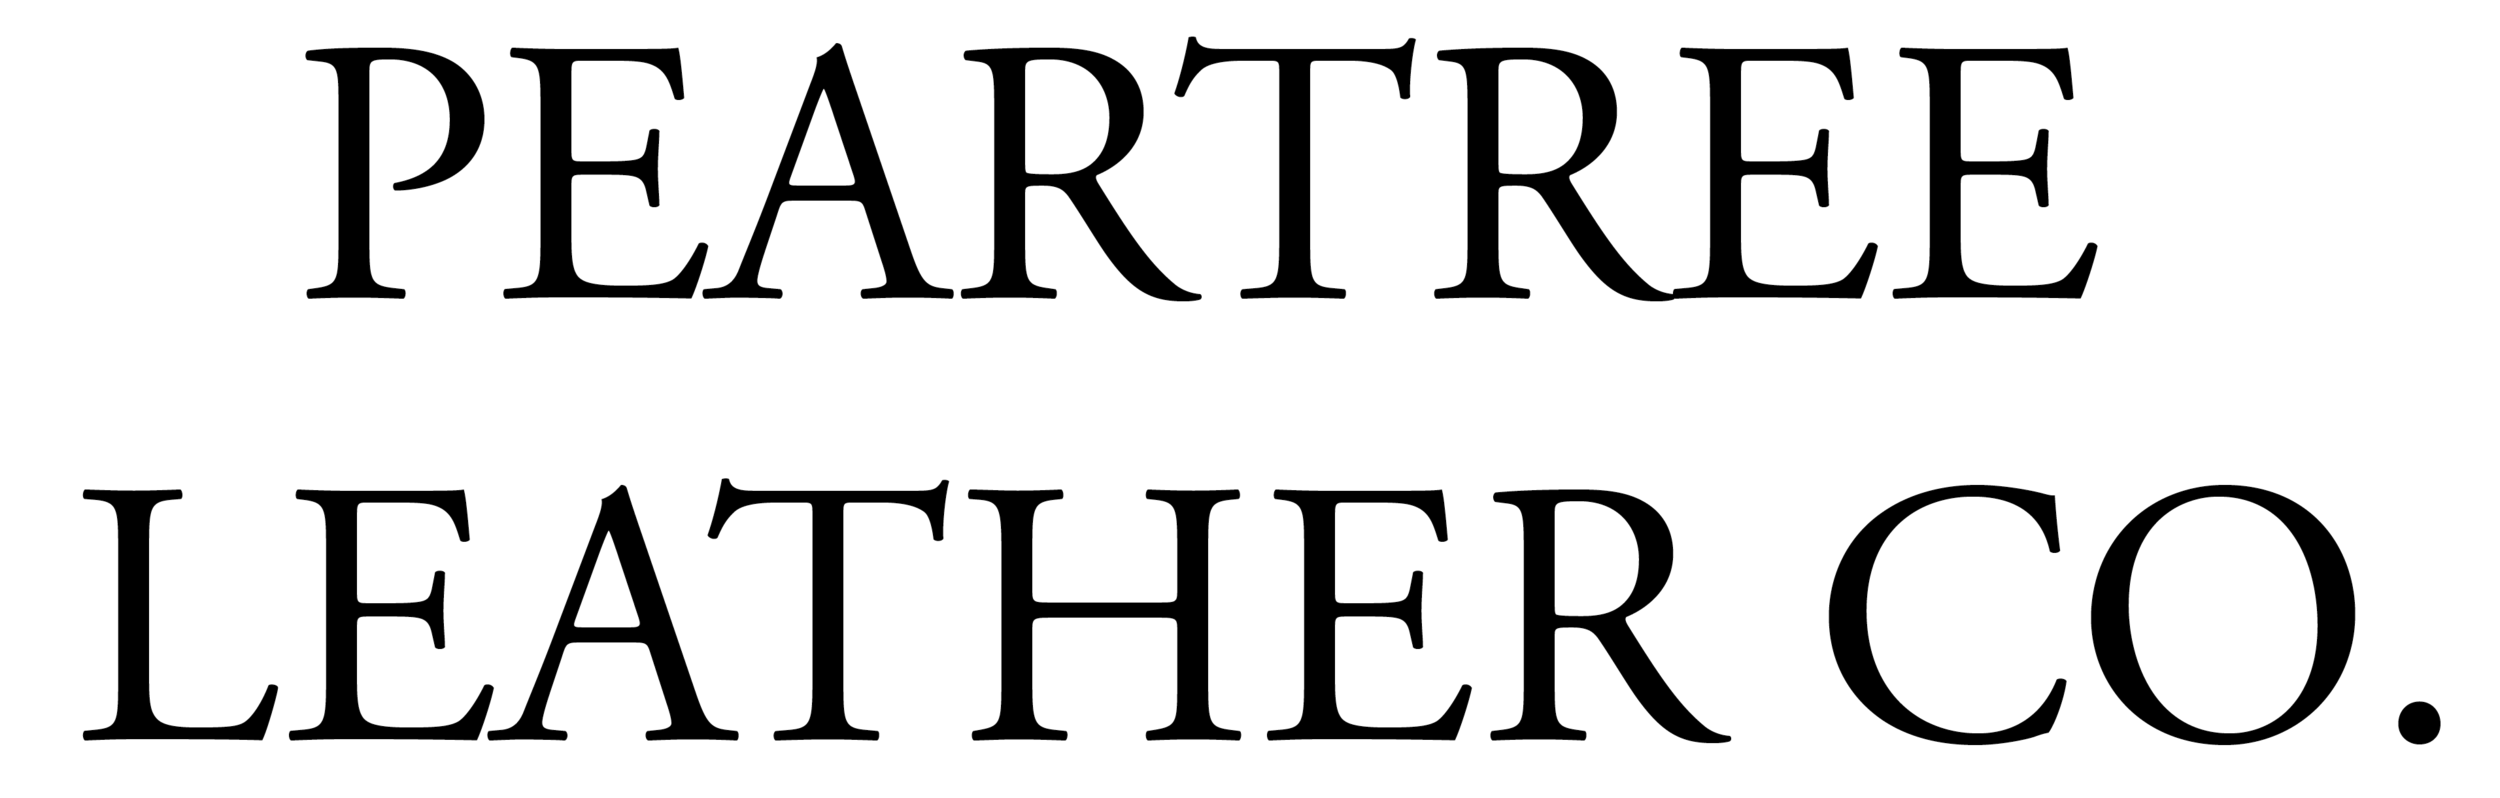 PEARTREE LEATHER CO. LOGO VANAJEROS2.png